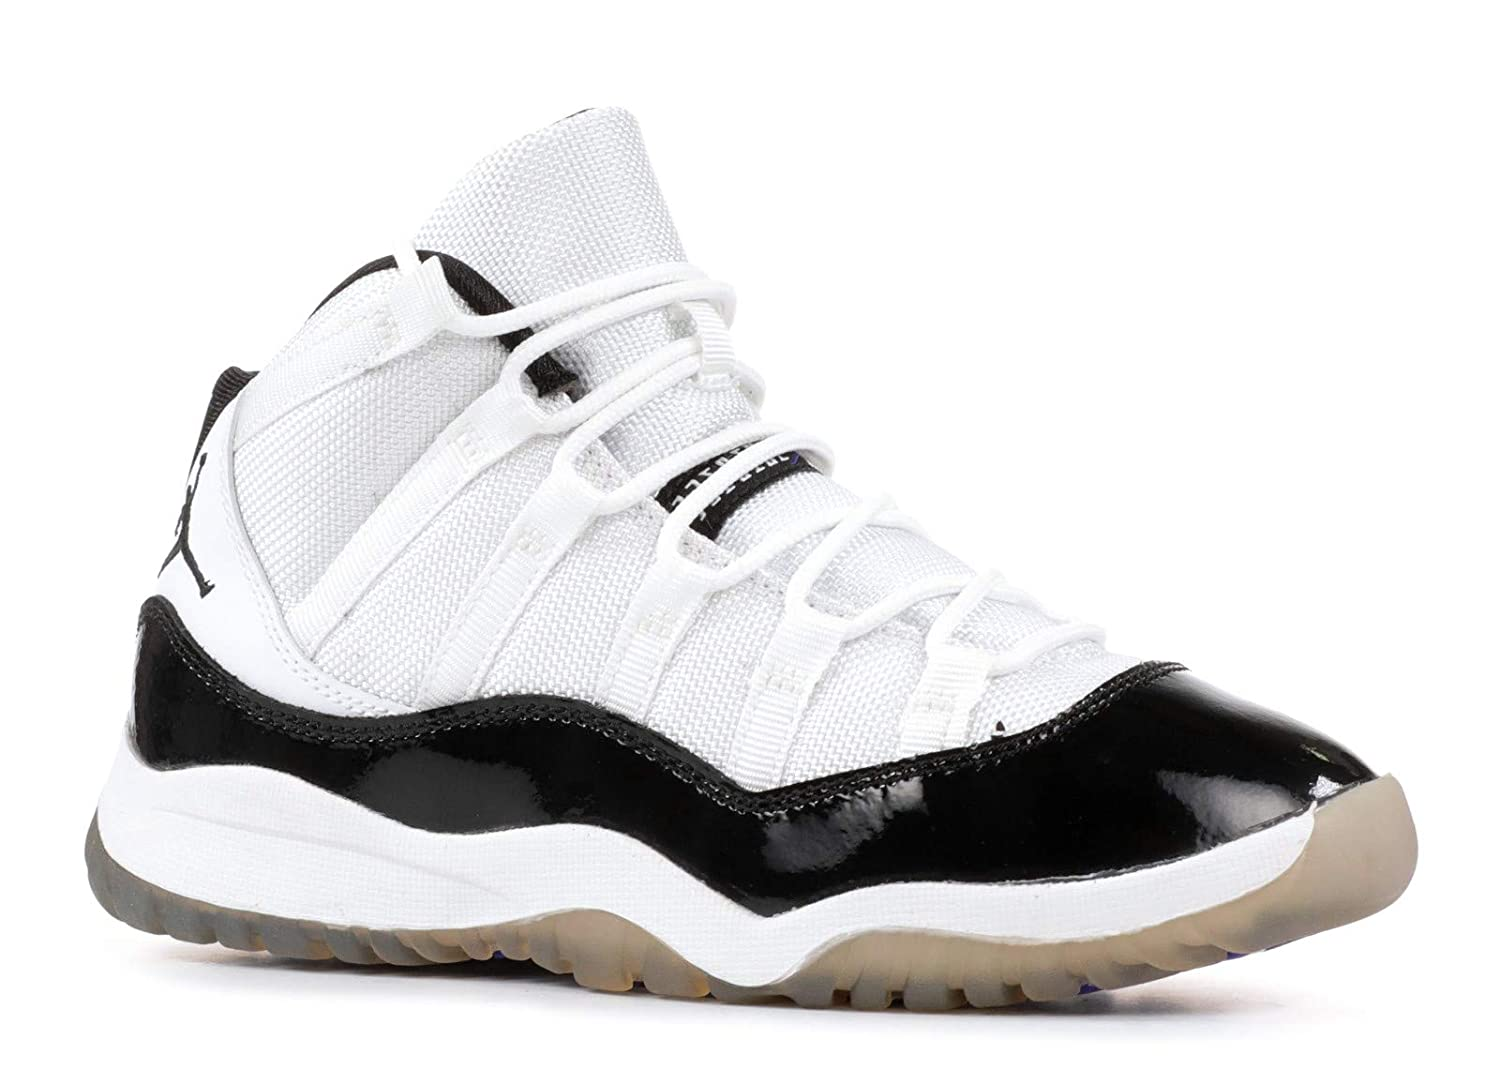 online store 874f0 5bbfa Amazon.com  Nike Air Jordan 11 Retro (PS) Concord Little Kids Basketball  Shoes  378039-107  White Black-Dark Concord Boys Shoes 378039-107  Shoes